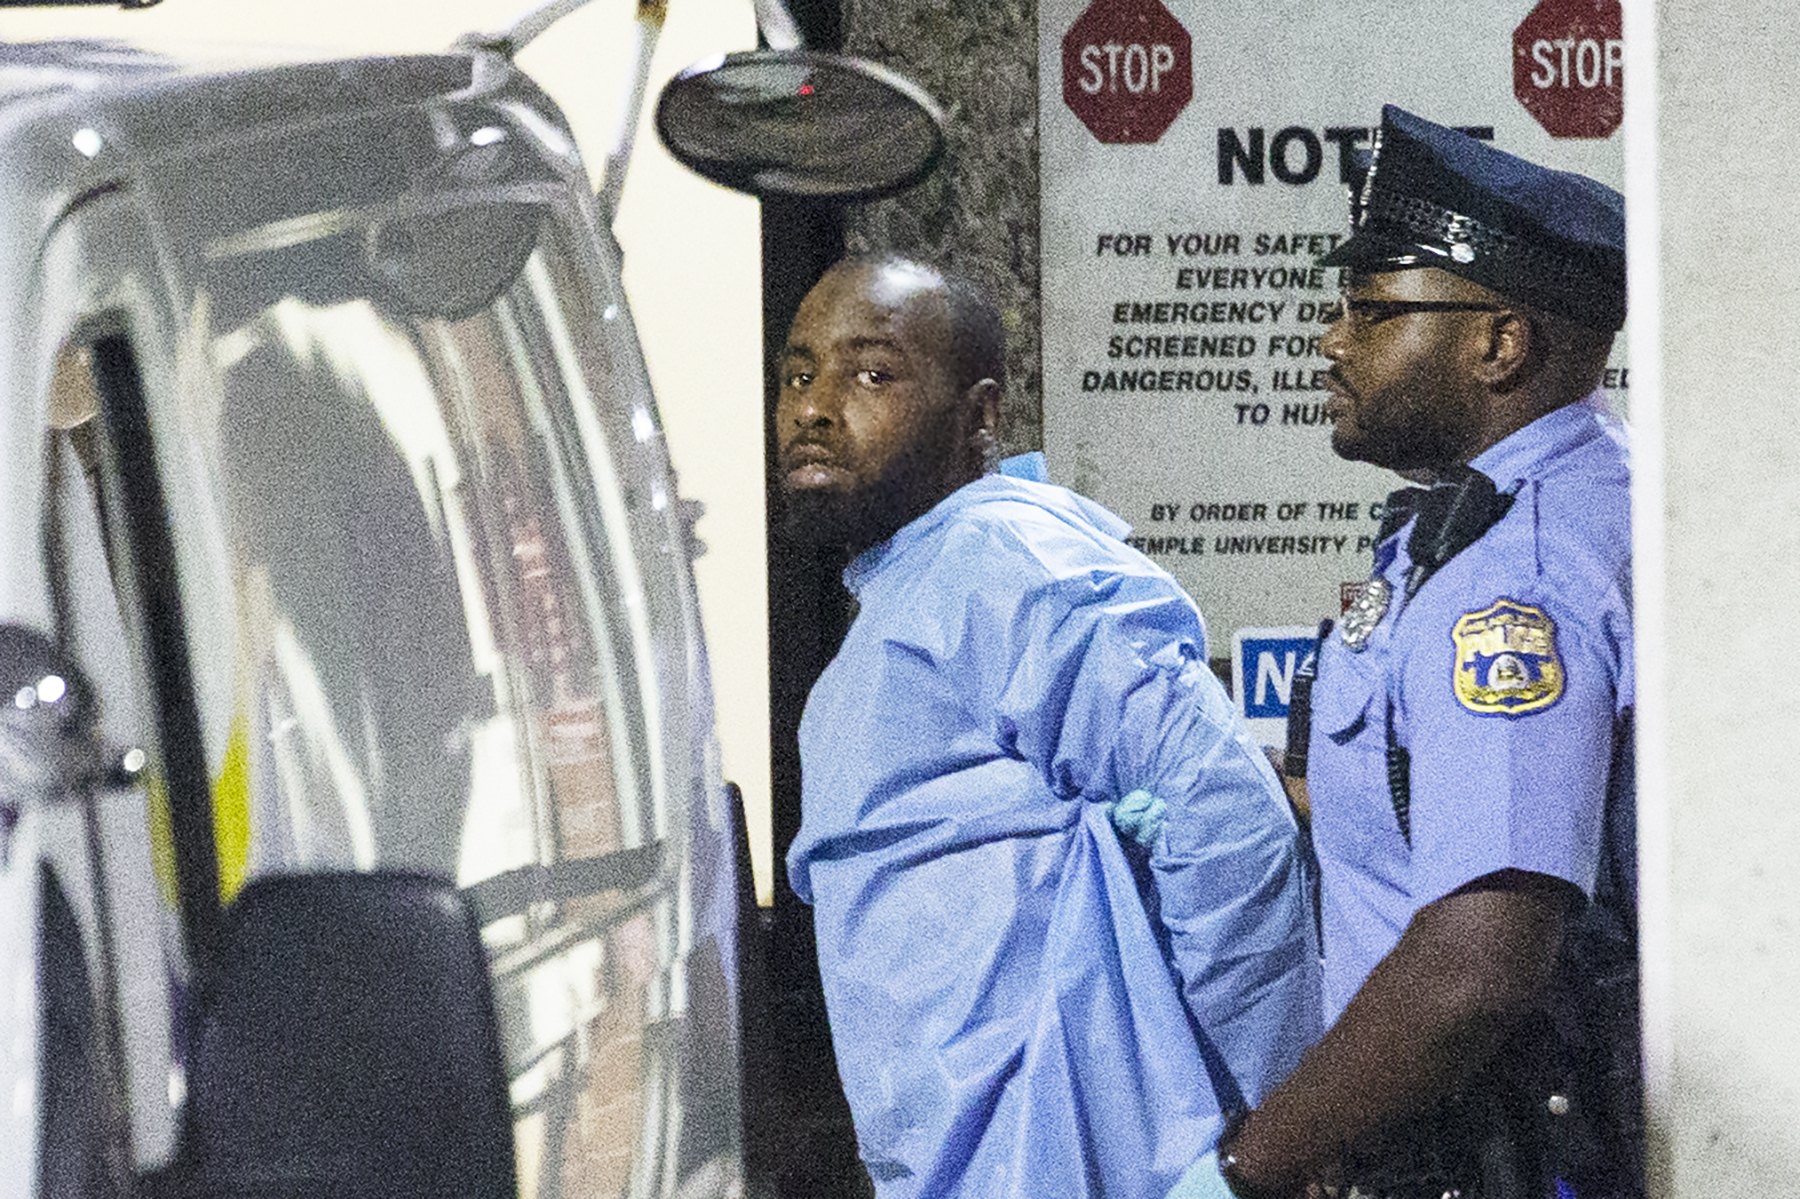 Police take shooting suspect, Maurice Hill, into custody after an hourslong standoff with police, that wounded several police officers, in Philadelphia early Thursday, Aug. 15, 2019. (Photo: Elizabeth Robertson/The Philadelphia Inquirer via AP)